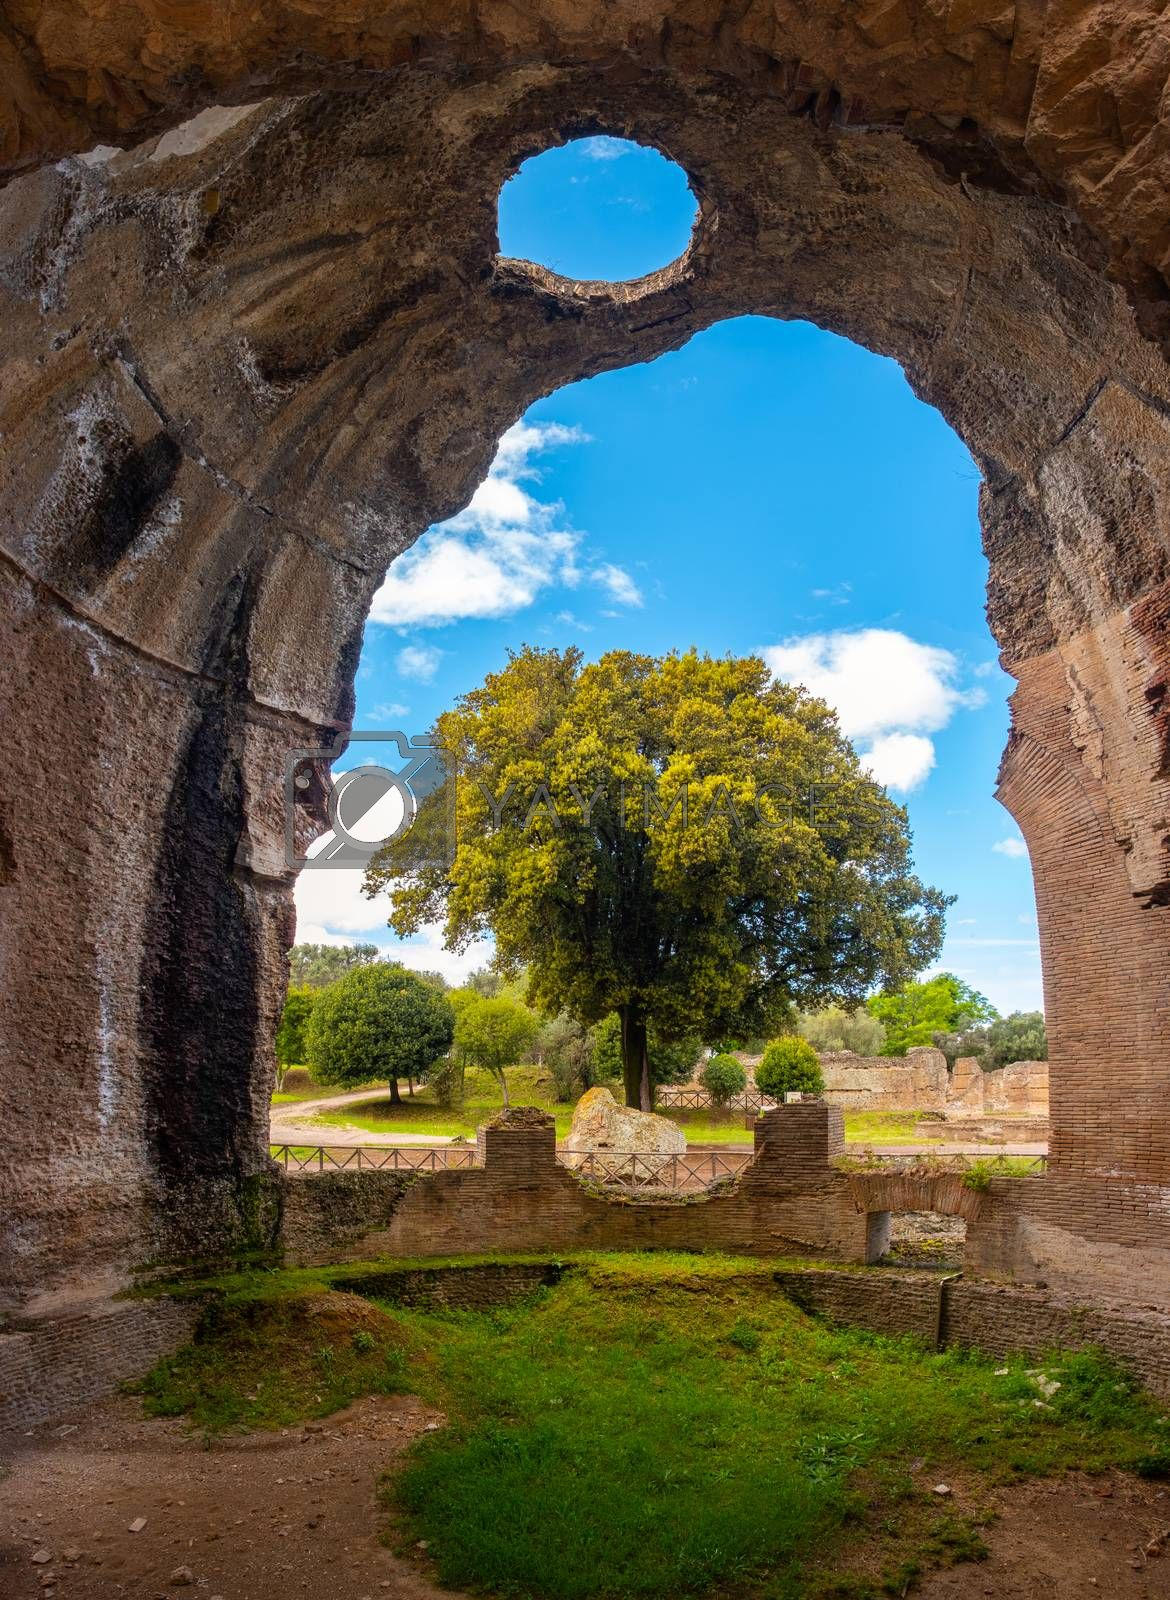 Villa Adriana - Rome Tivoli - Italy -  large tree seen through  large chasm on walls of ancient Roman palace with  circle-shaped hole on ceiling .